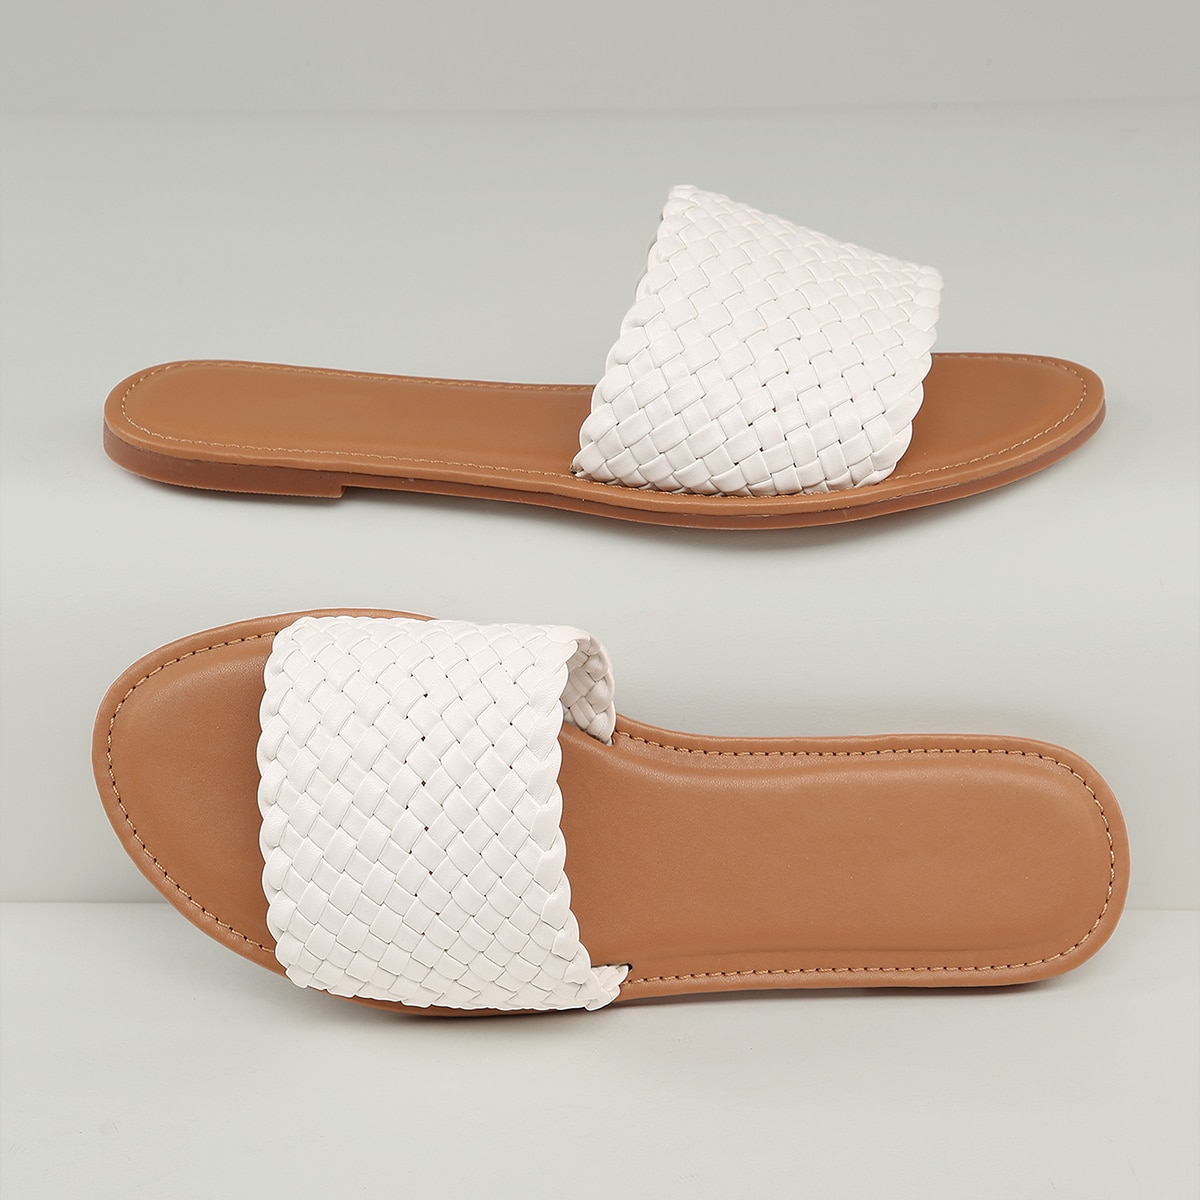 SHEIN / Faux Leather Basketweave Slip-On Sandals